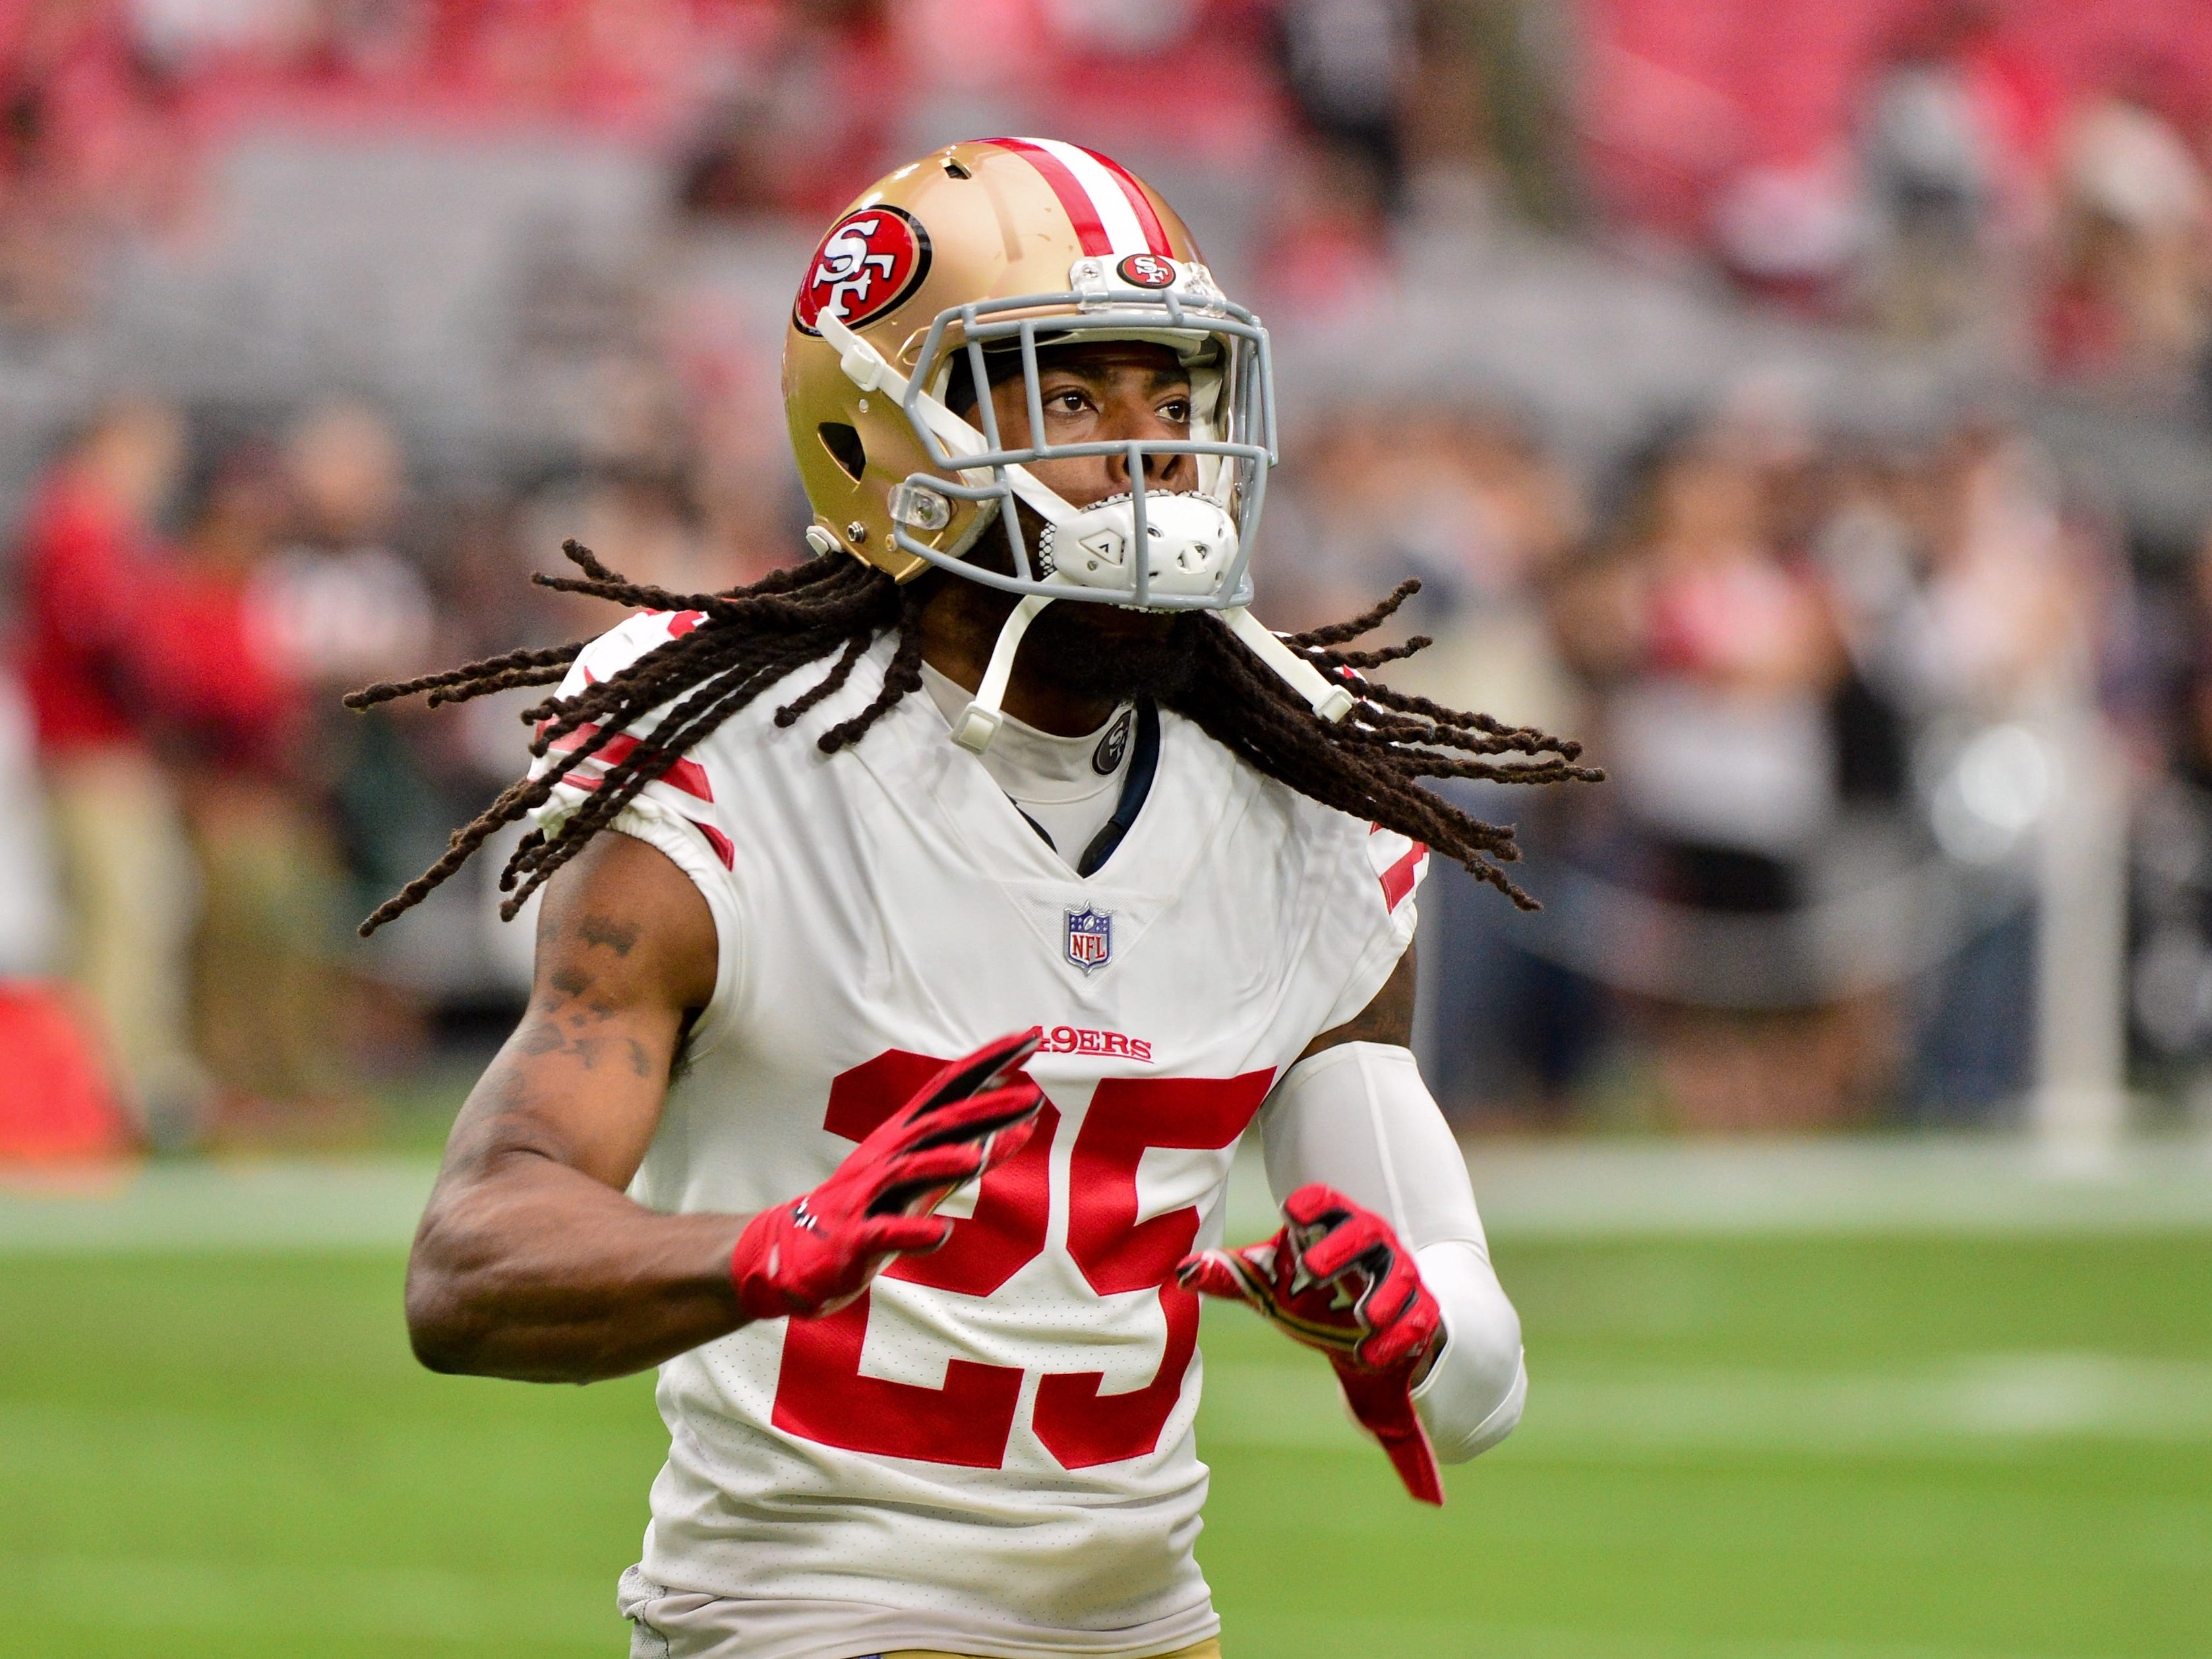 Oct 28, 2018; Glendale, AZ, USA; San Francisco 49ers cornerback Richard Sherman (25) warms up prior to the game against the Arizona Cardinals at State Farm Stadium.